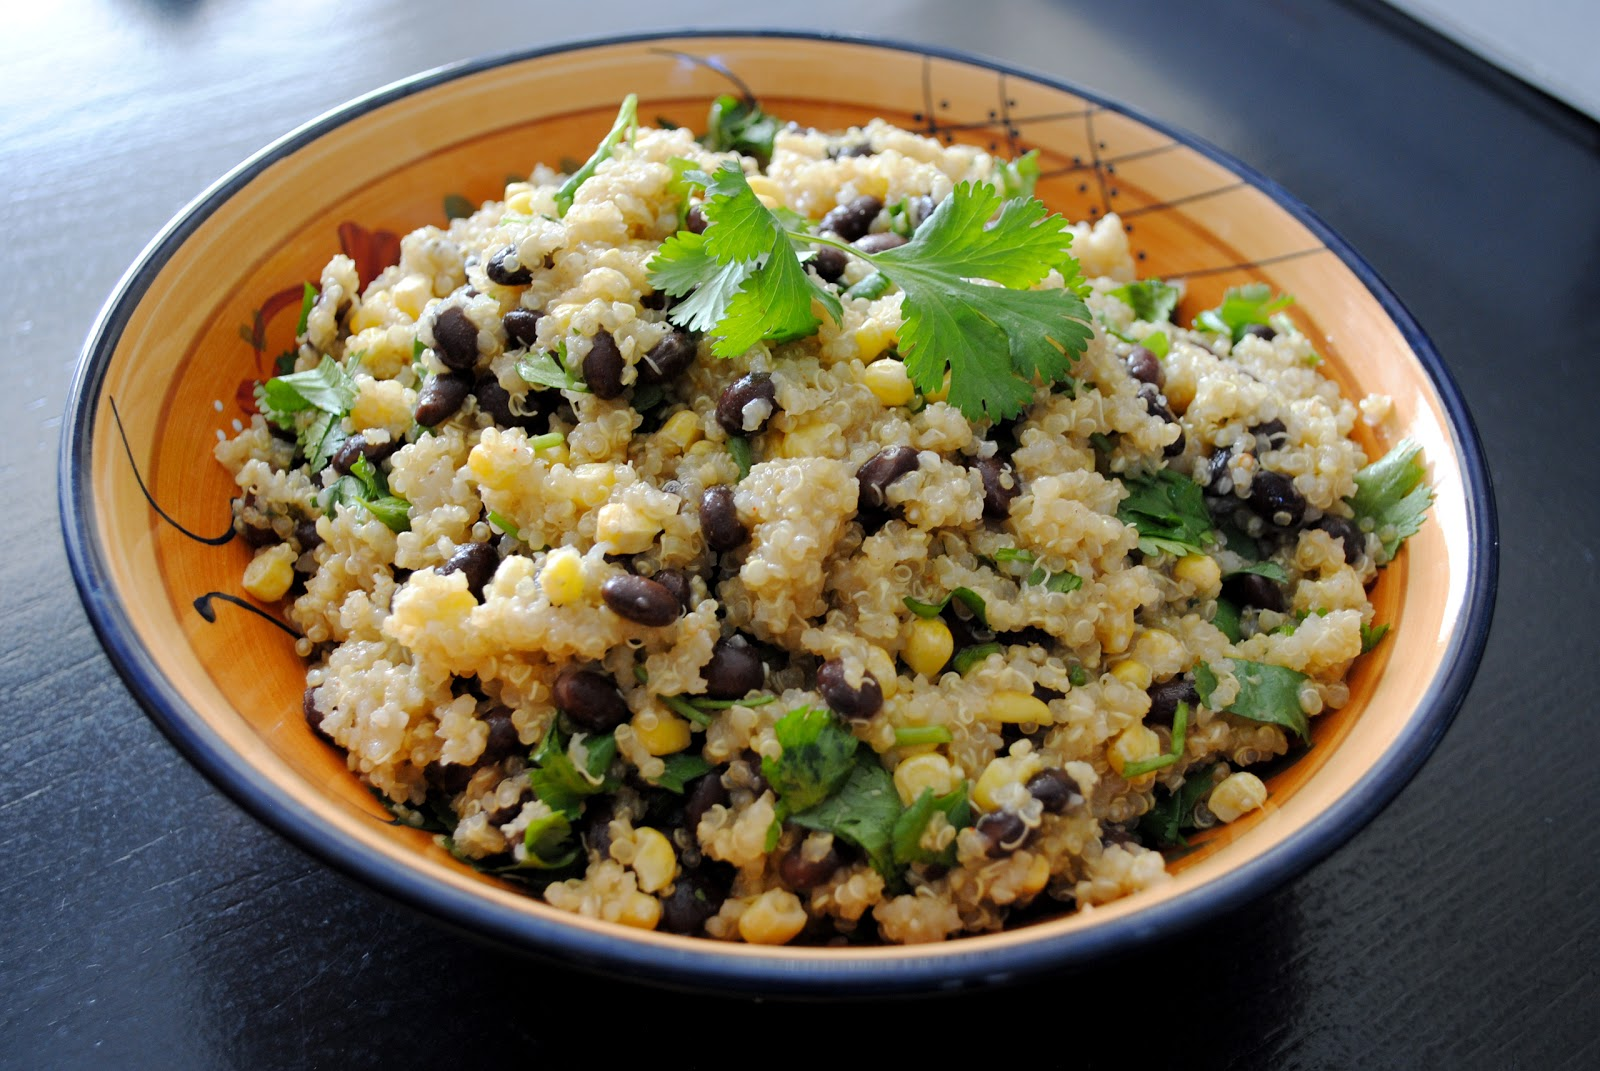 Whole Grain Quinoa (1/4 cup dry):